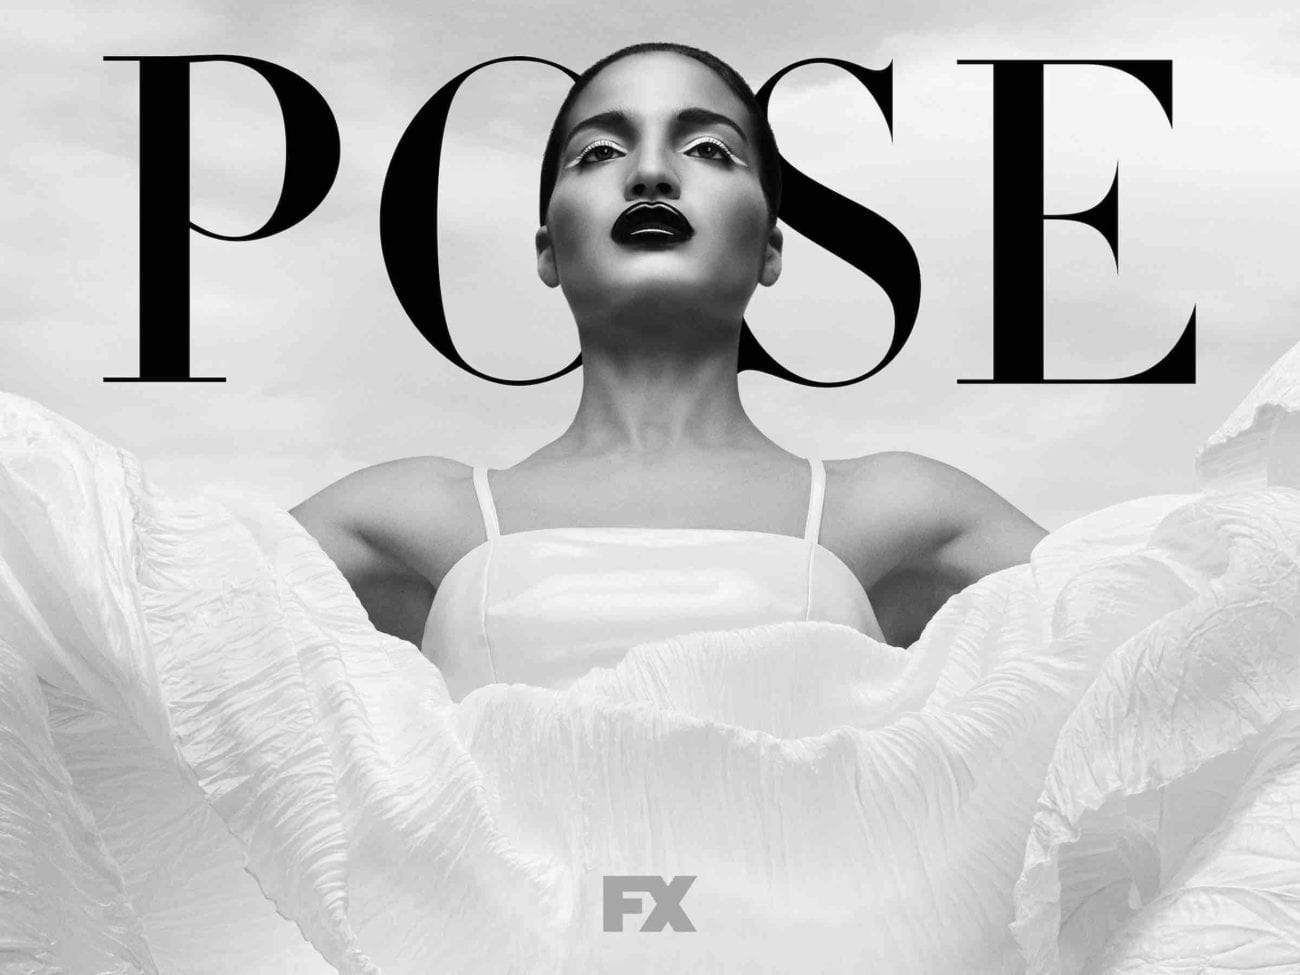 FX has released plenty of promos to get you hyped up for 'Pose' season two: let's go through what they've put out so far.